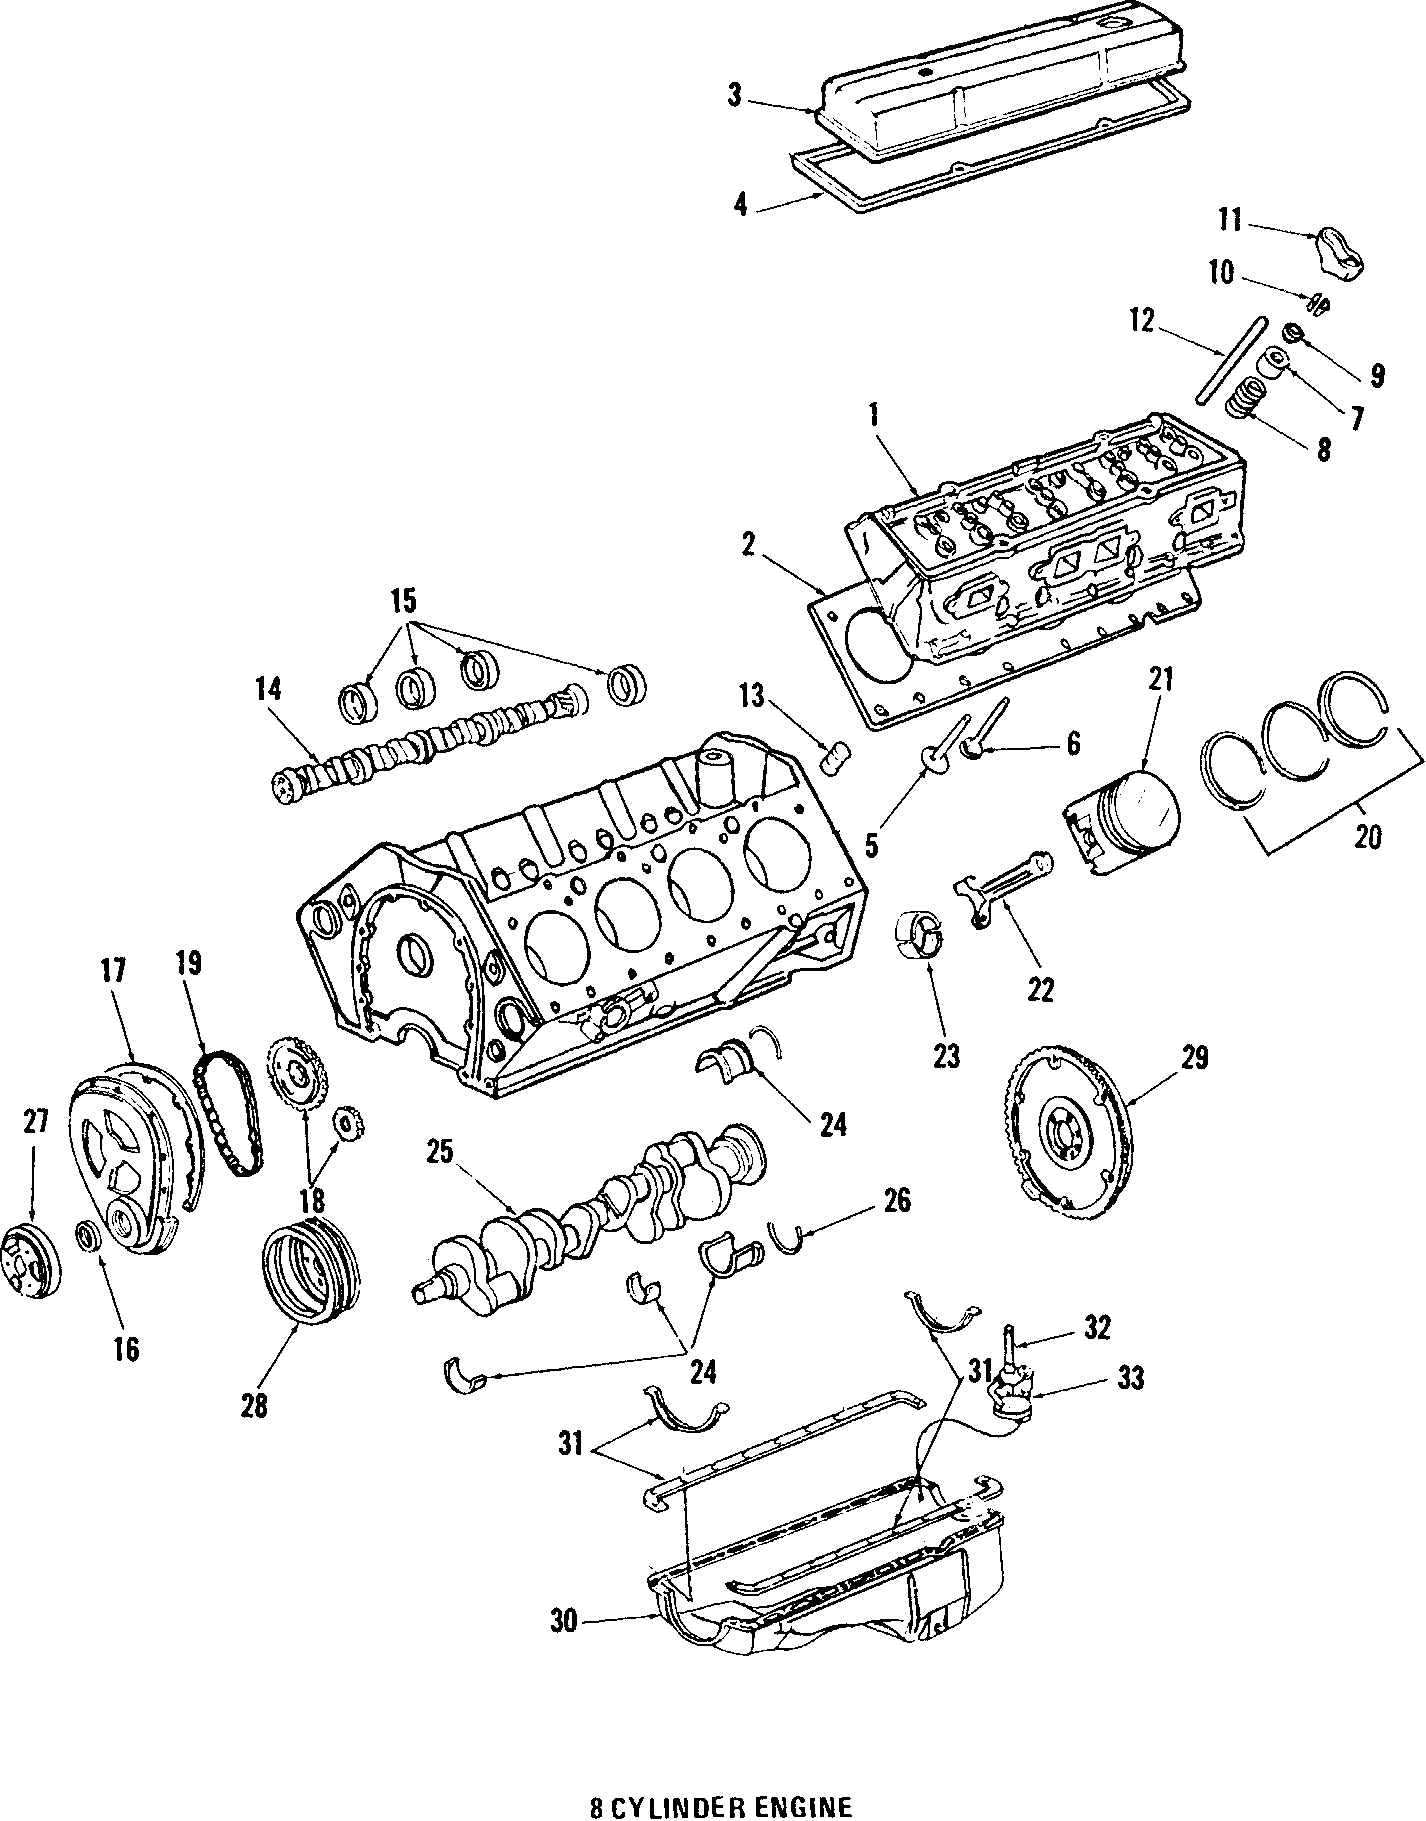 Chevrolet Camaro Cylinder Head Engine Models